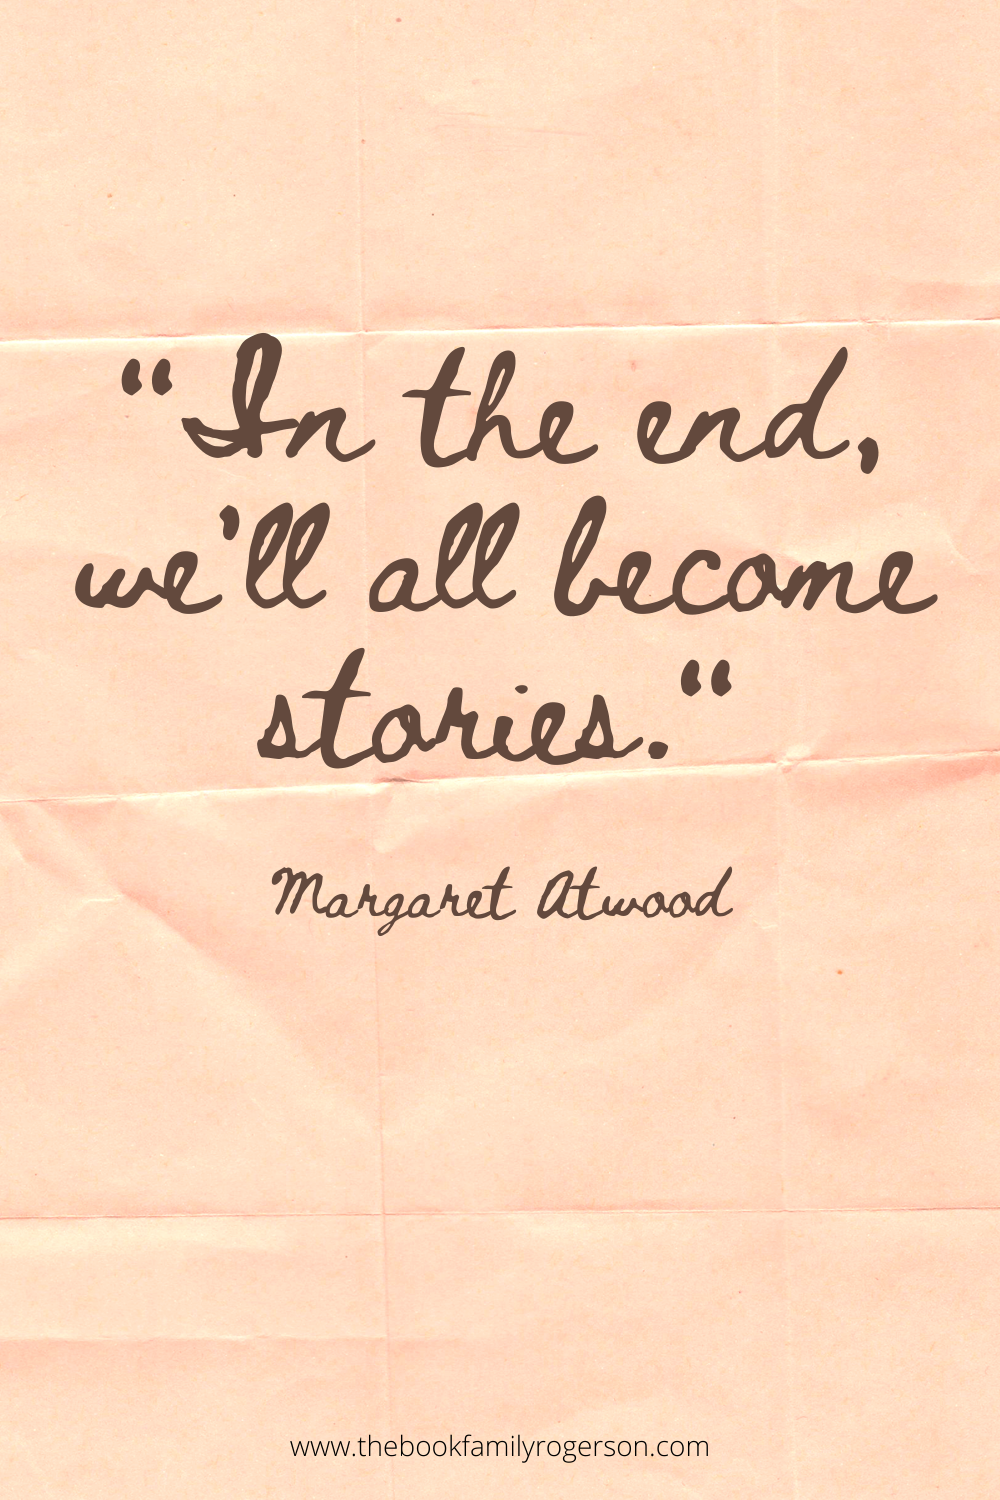 14 Bookish Quotes to Inspire Your Creative Life